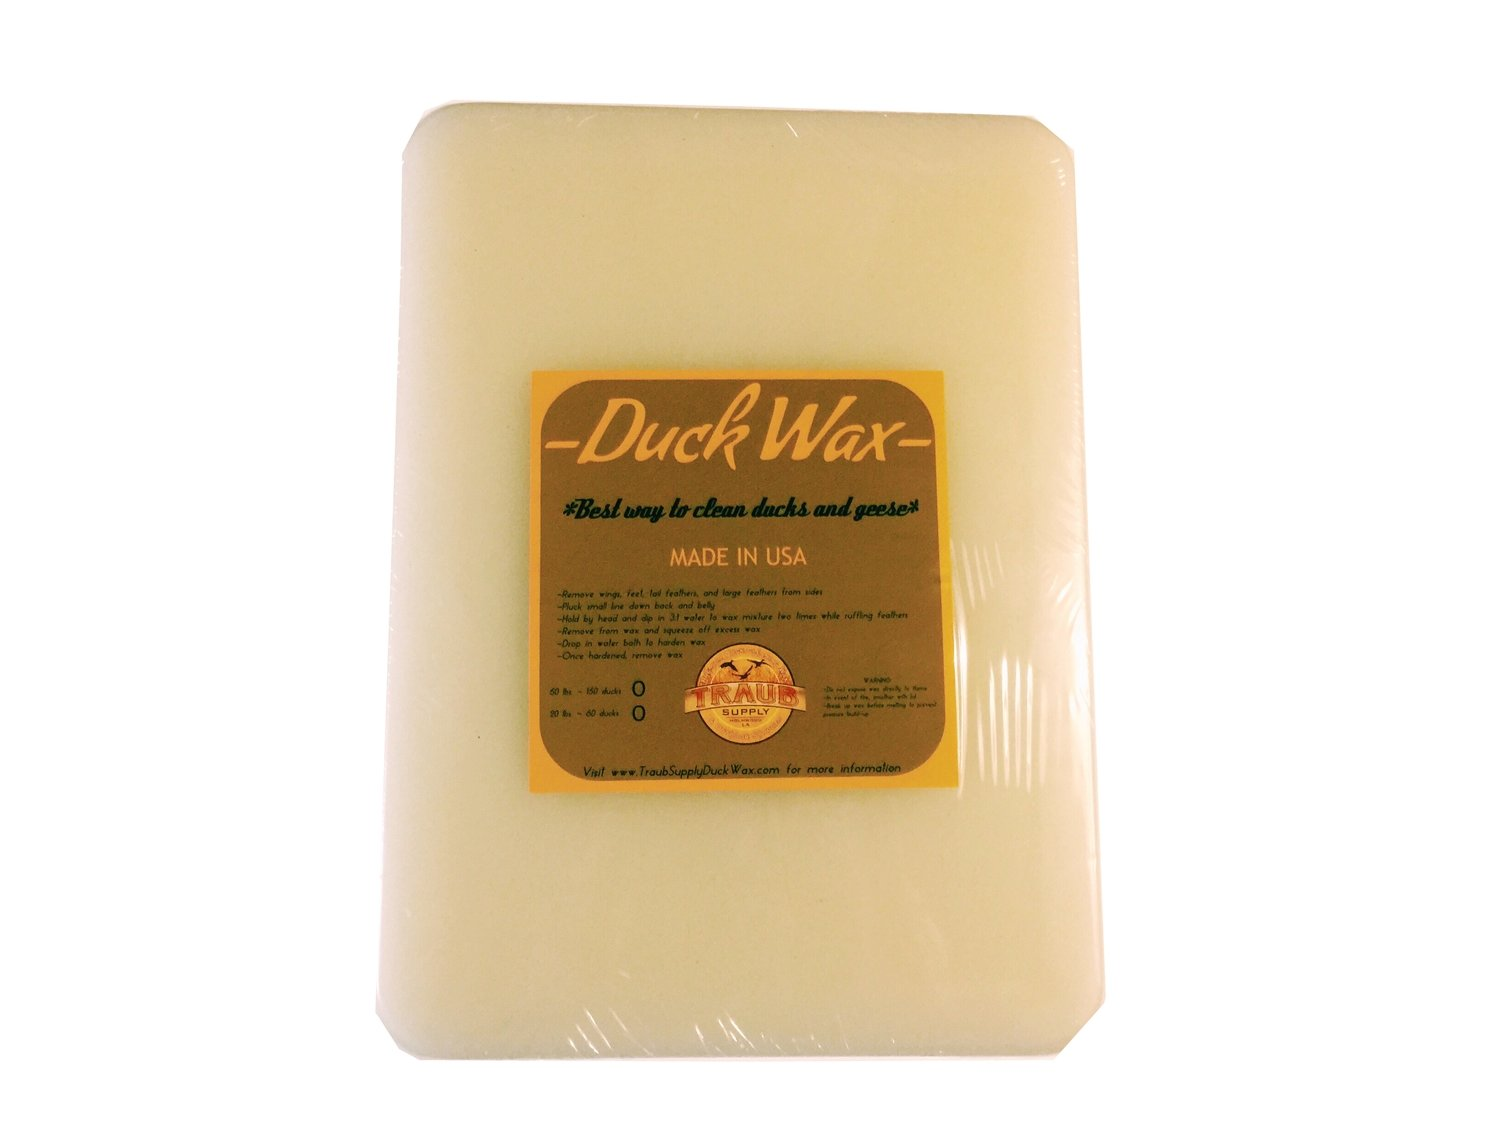 BUY NOW - 5 slabs 55 lbs. Farm Duck Wax (CLEANS ABOUT 100-150 FARM DUCKS) SHIPPING ADDED AT CHECKOUT